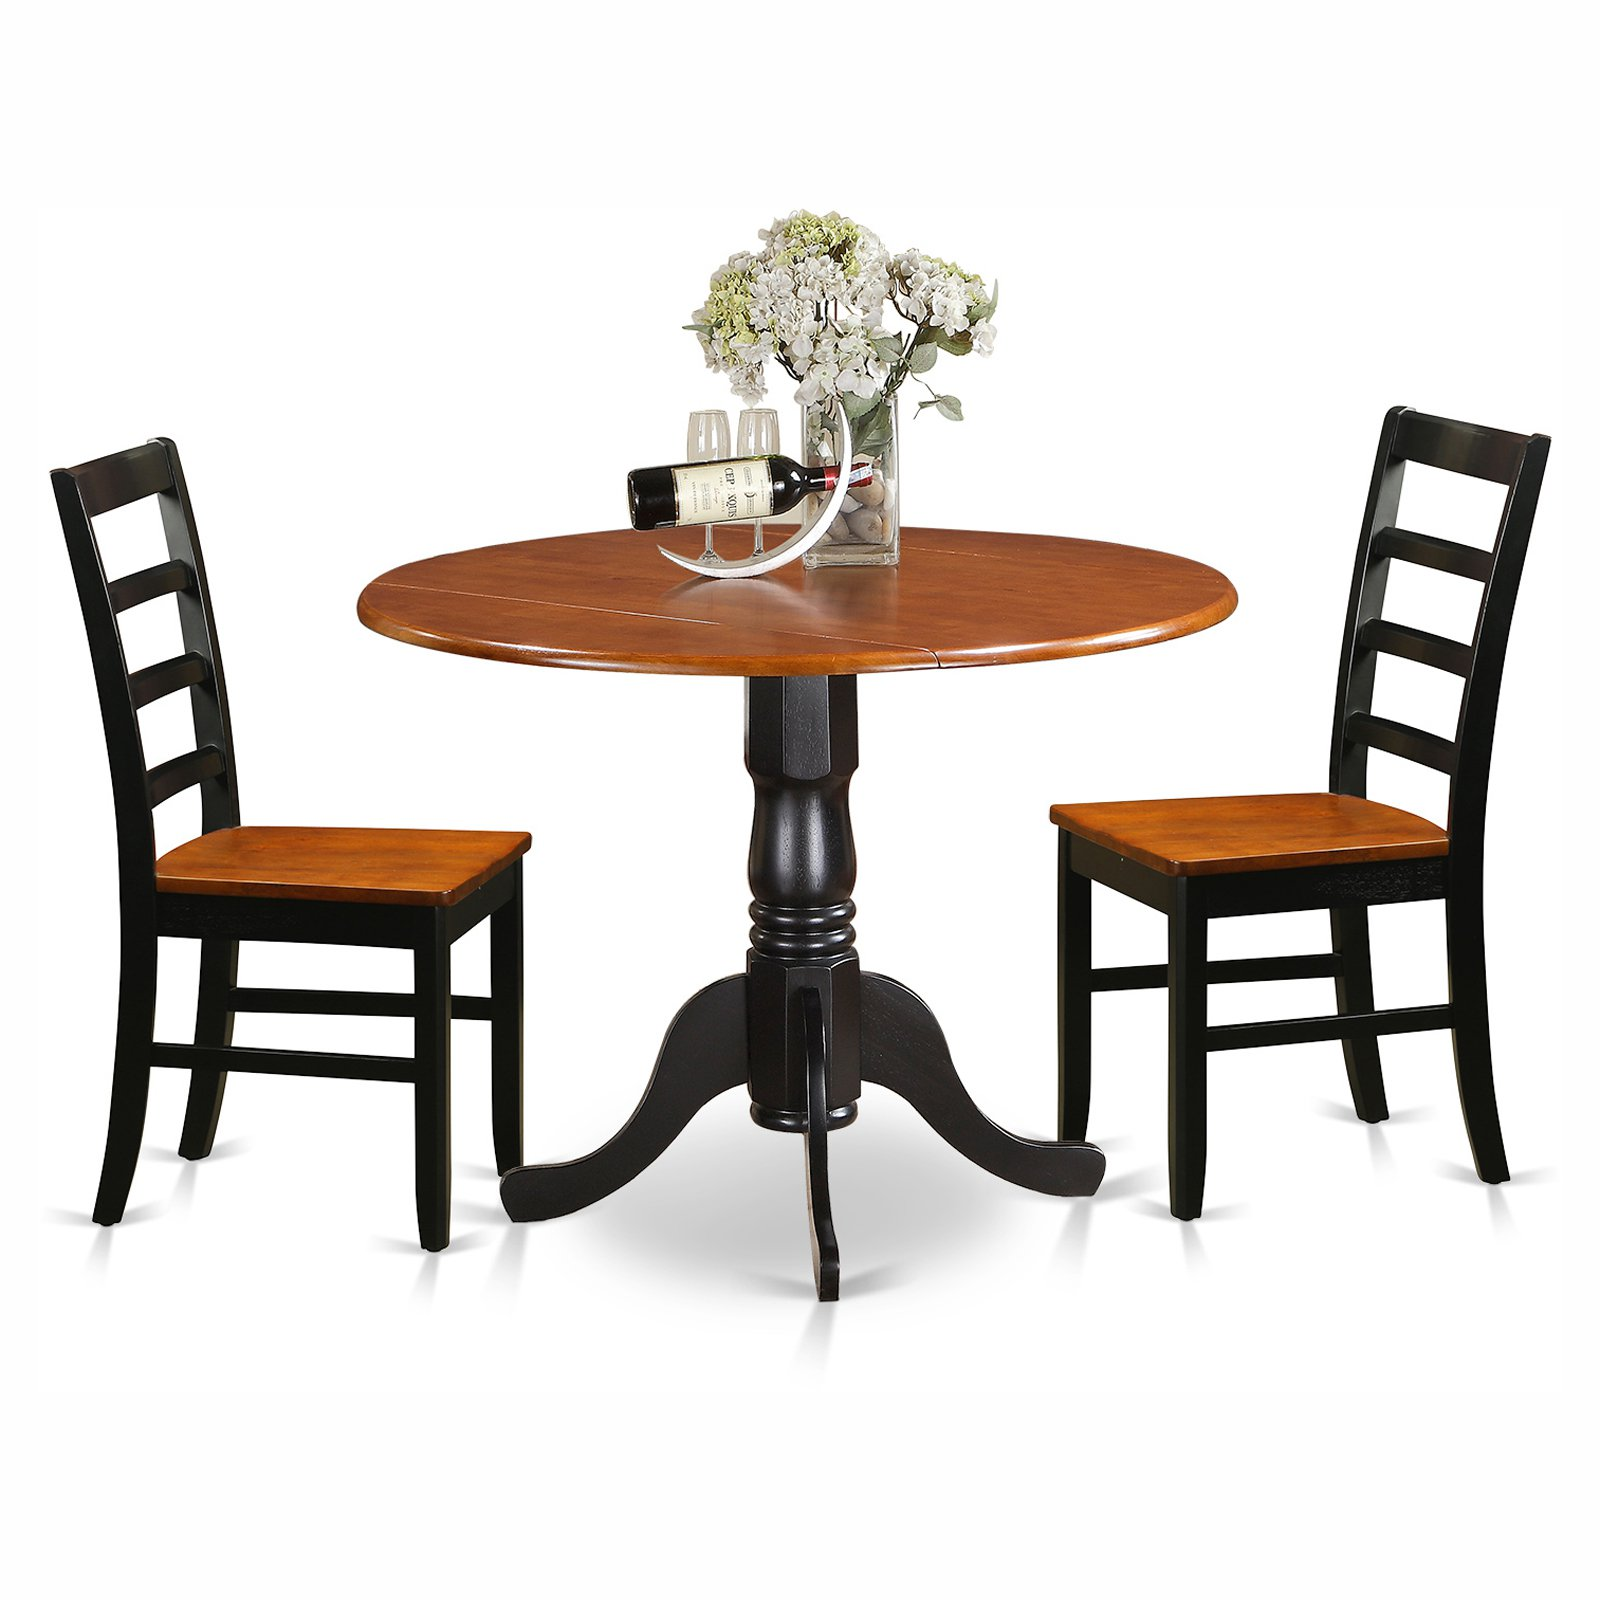 East West Furniture Dublin 3 Piece Round Dining Table Set with Parfait Wooden Seat Chairs